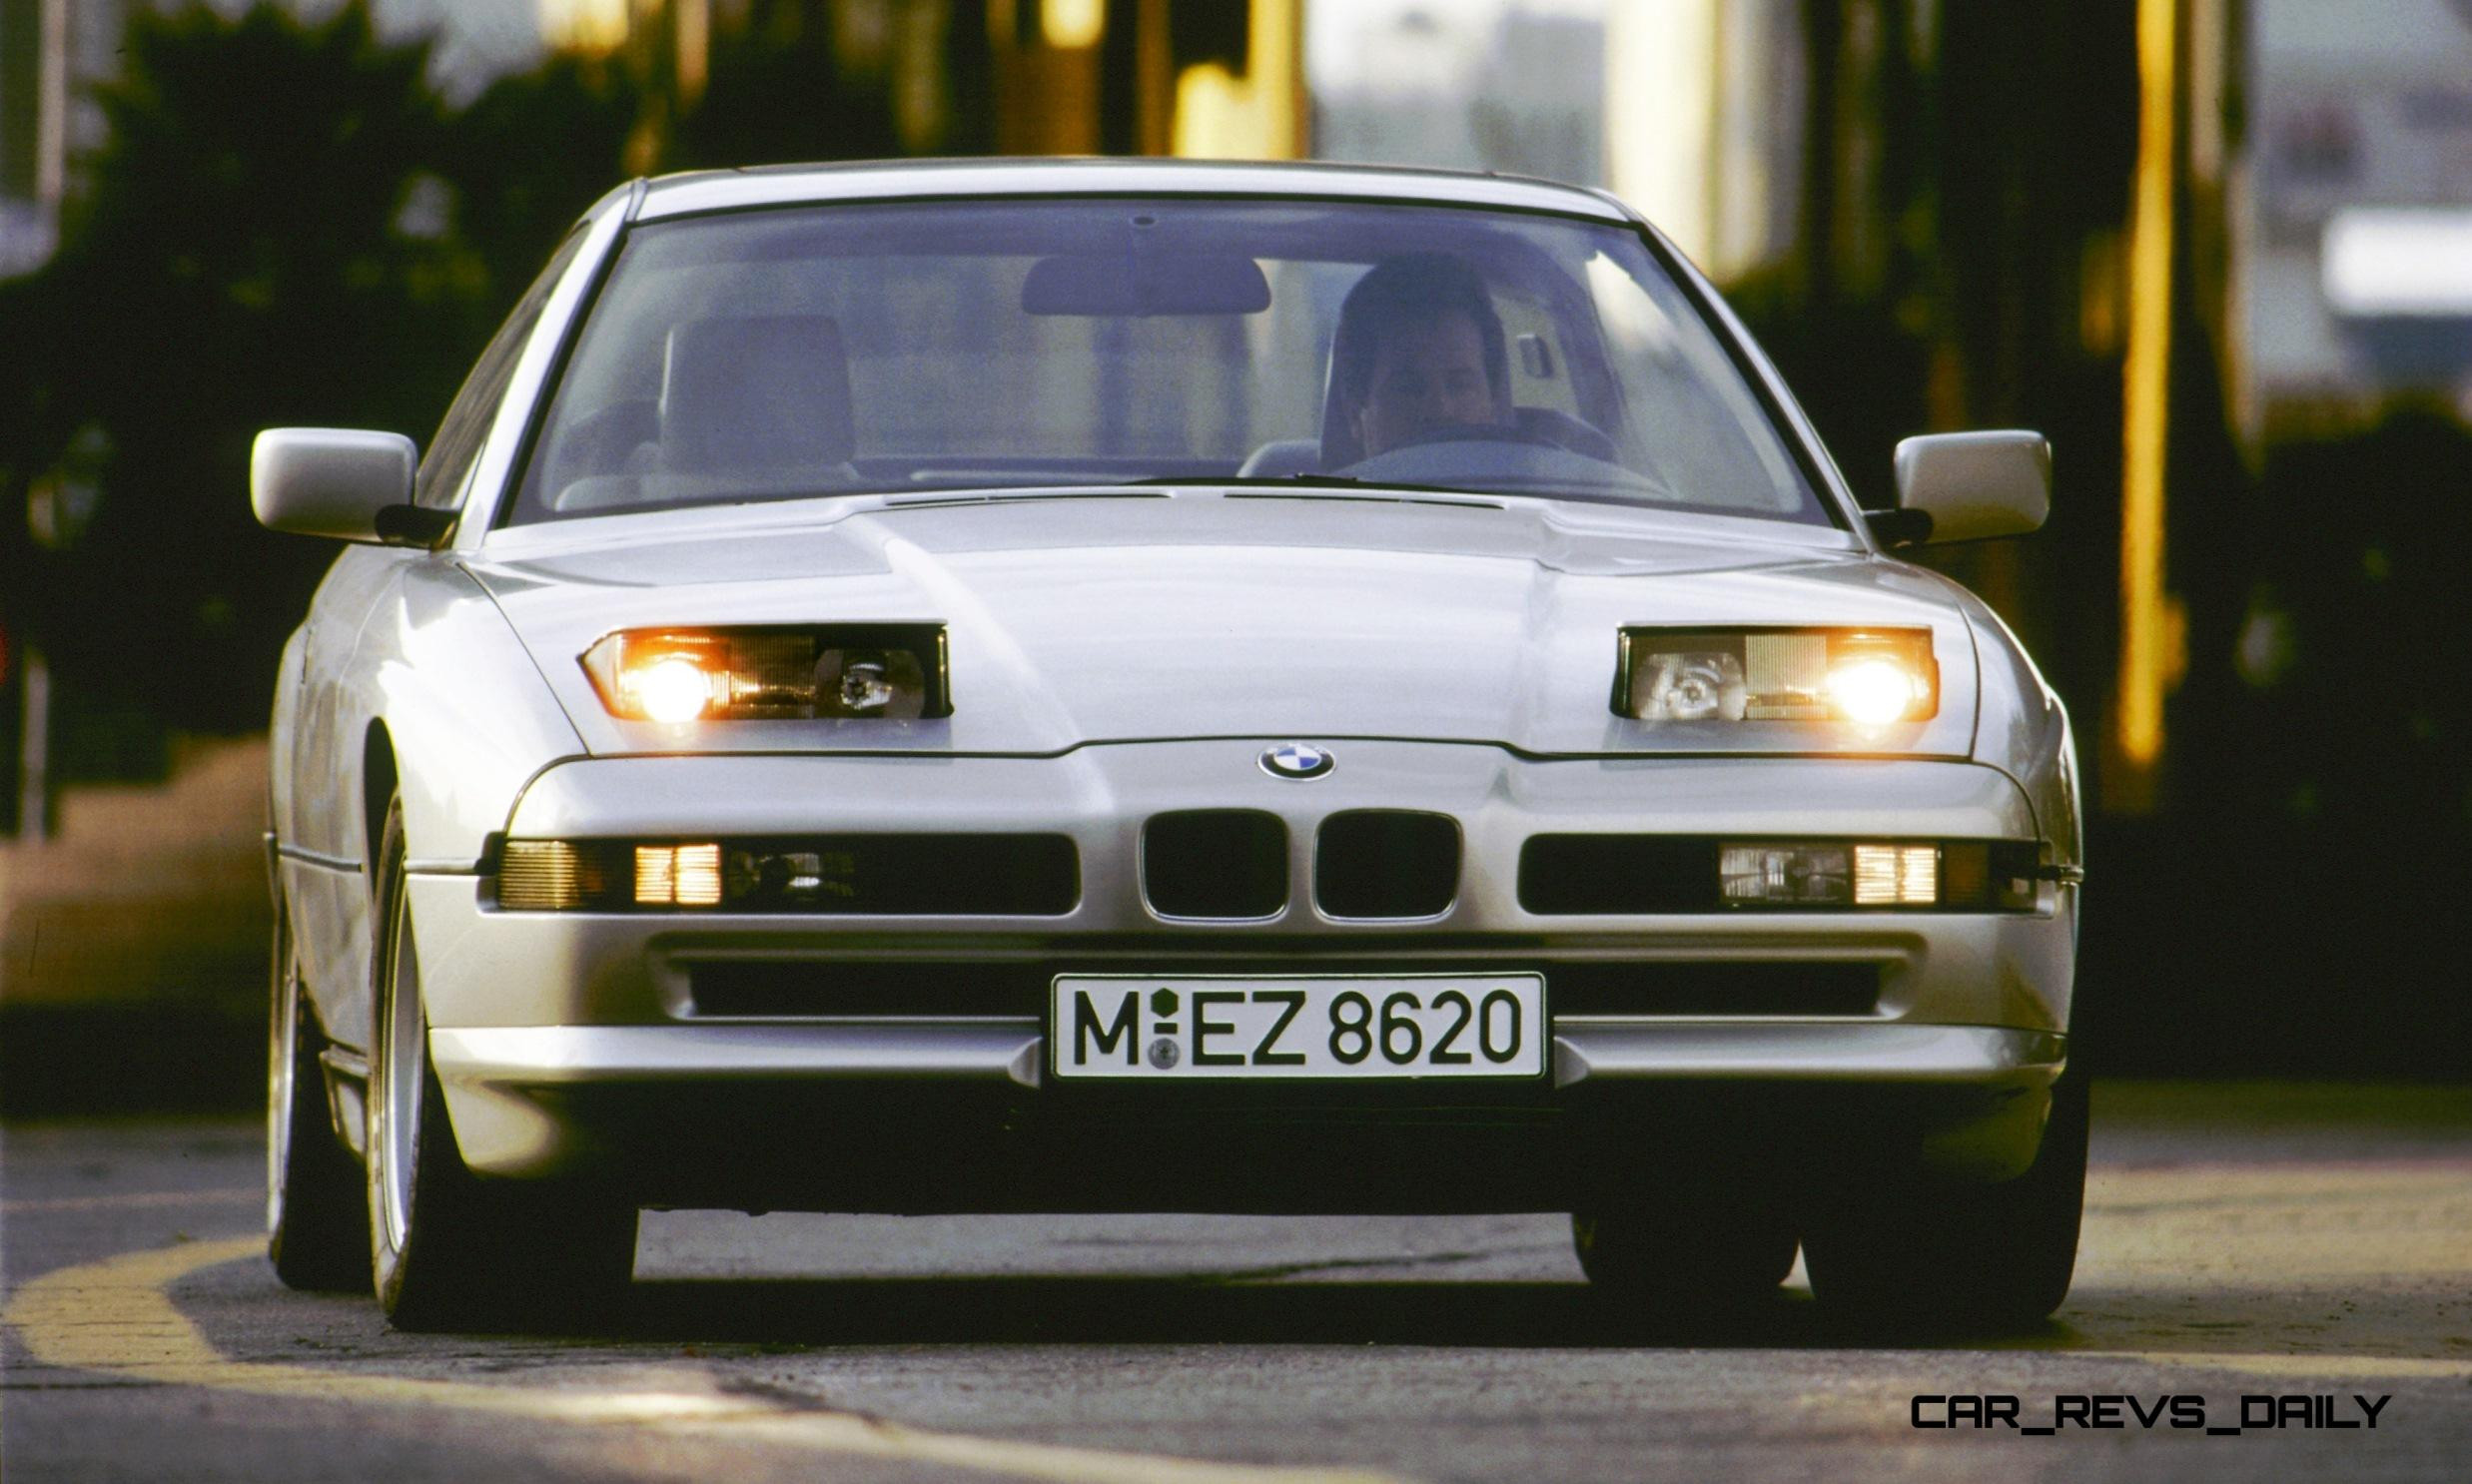 Bmw E31 840i 850i And 850csi Celebrate 25th Anniversary